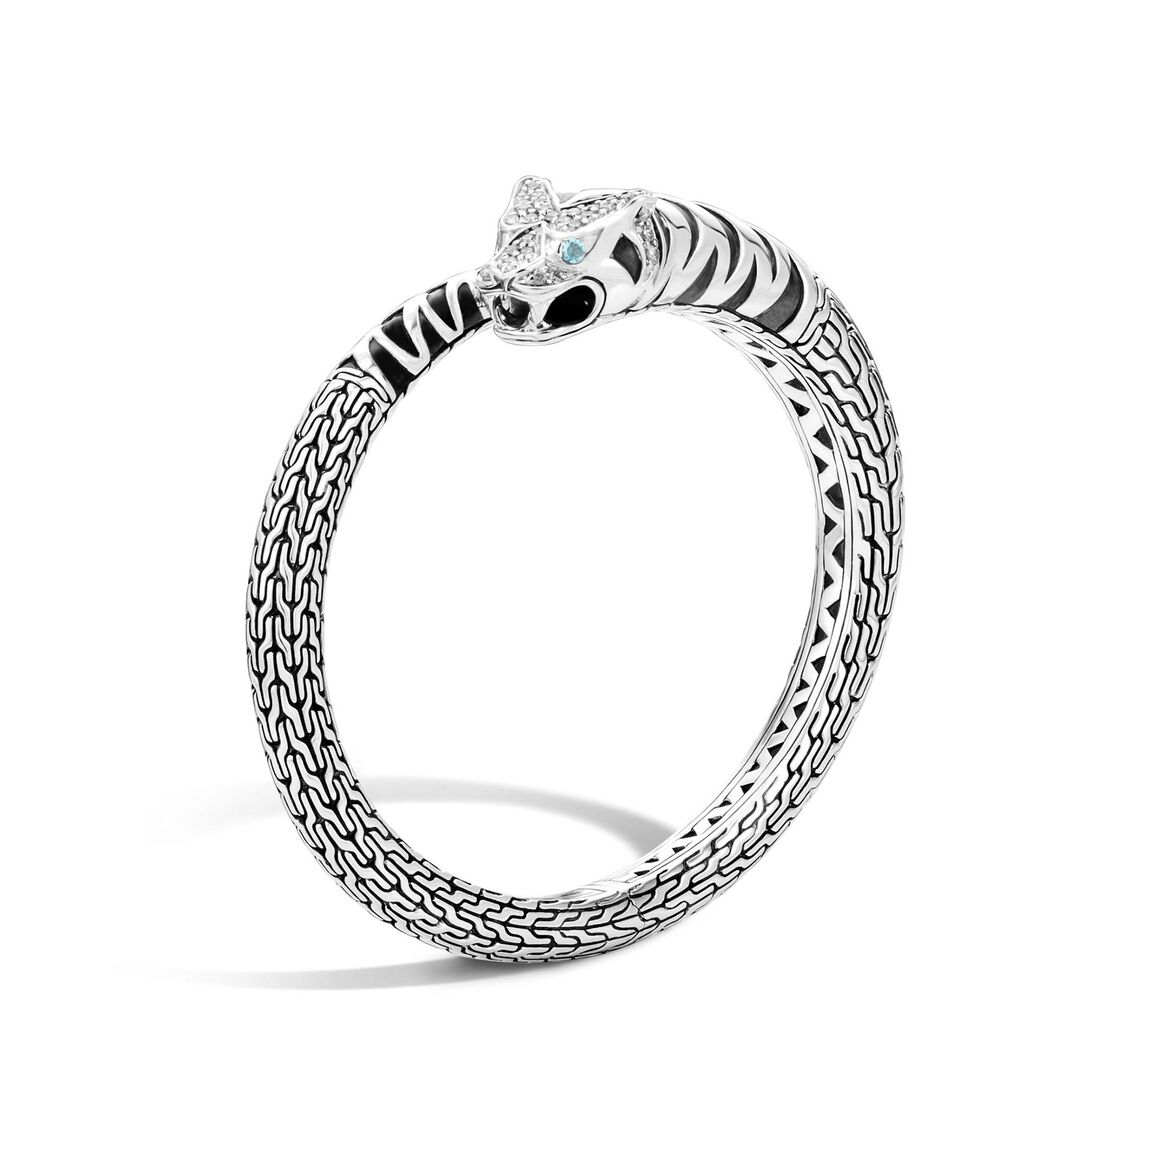 Legends Macan Kick Cuff in Silver with Diamonds